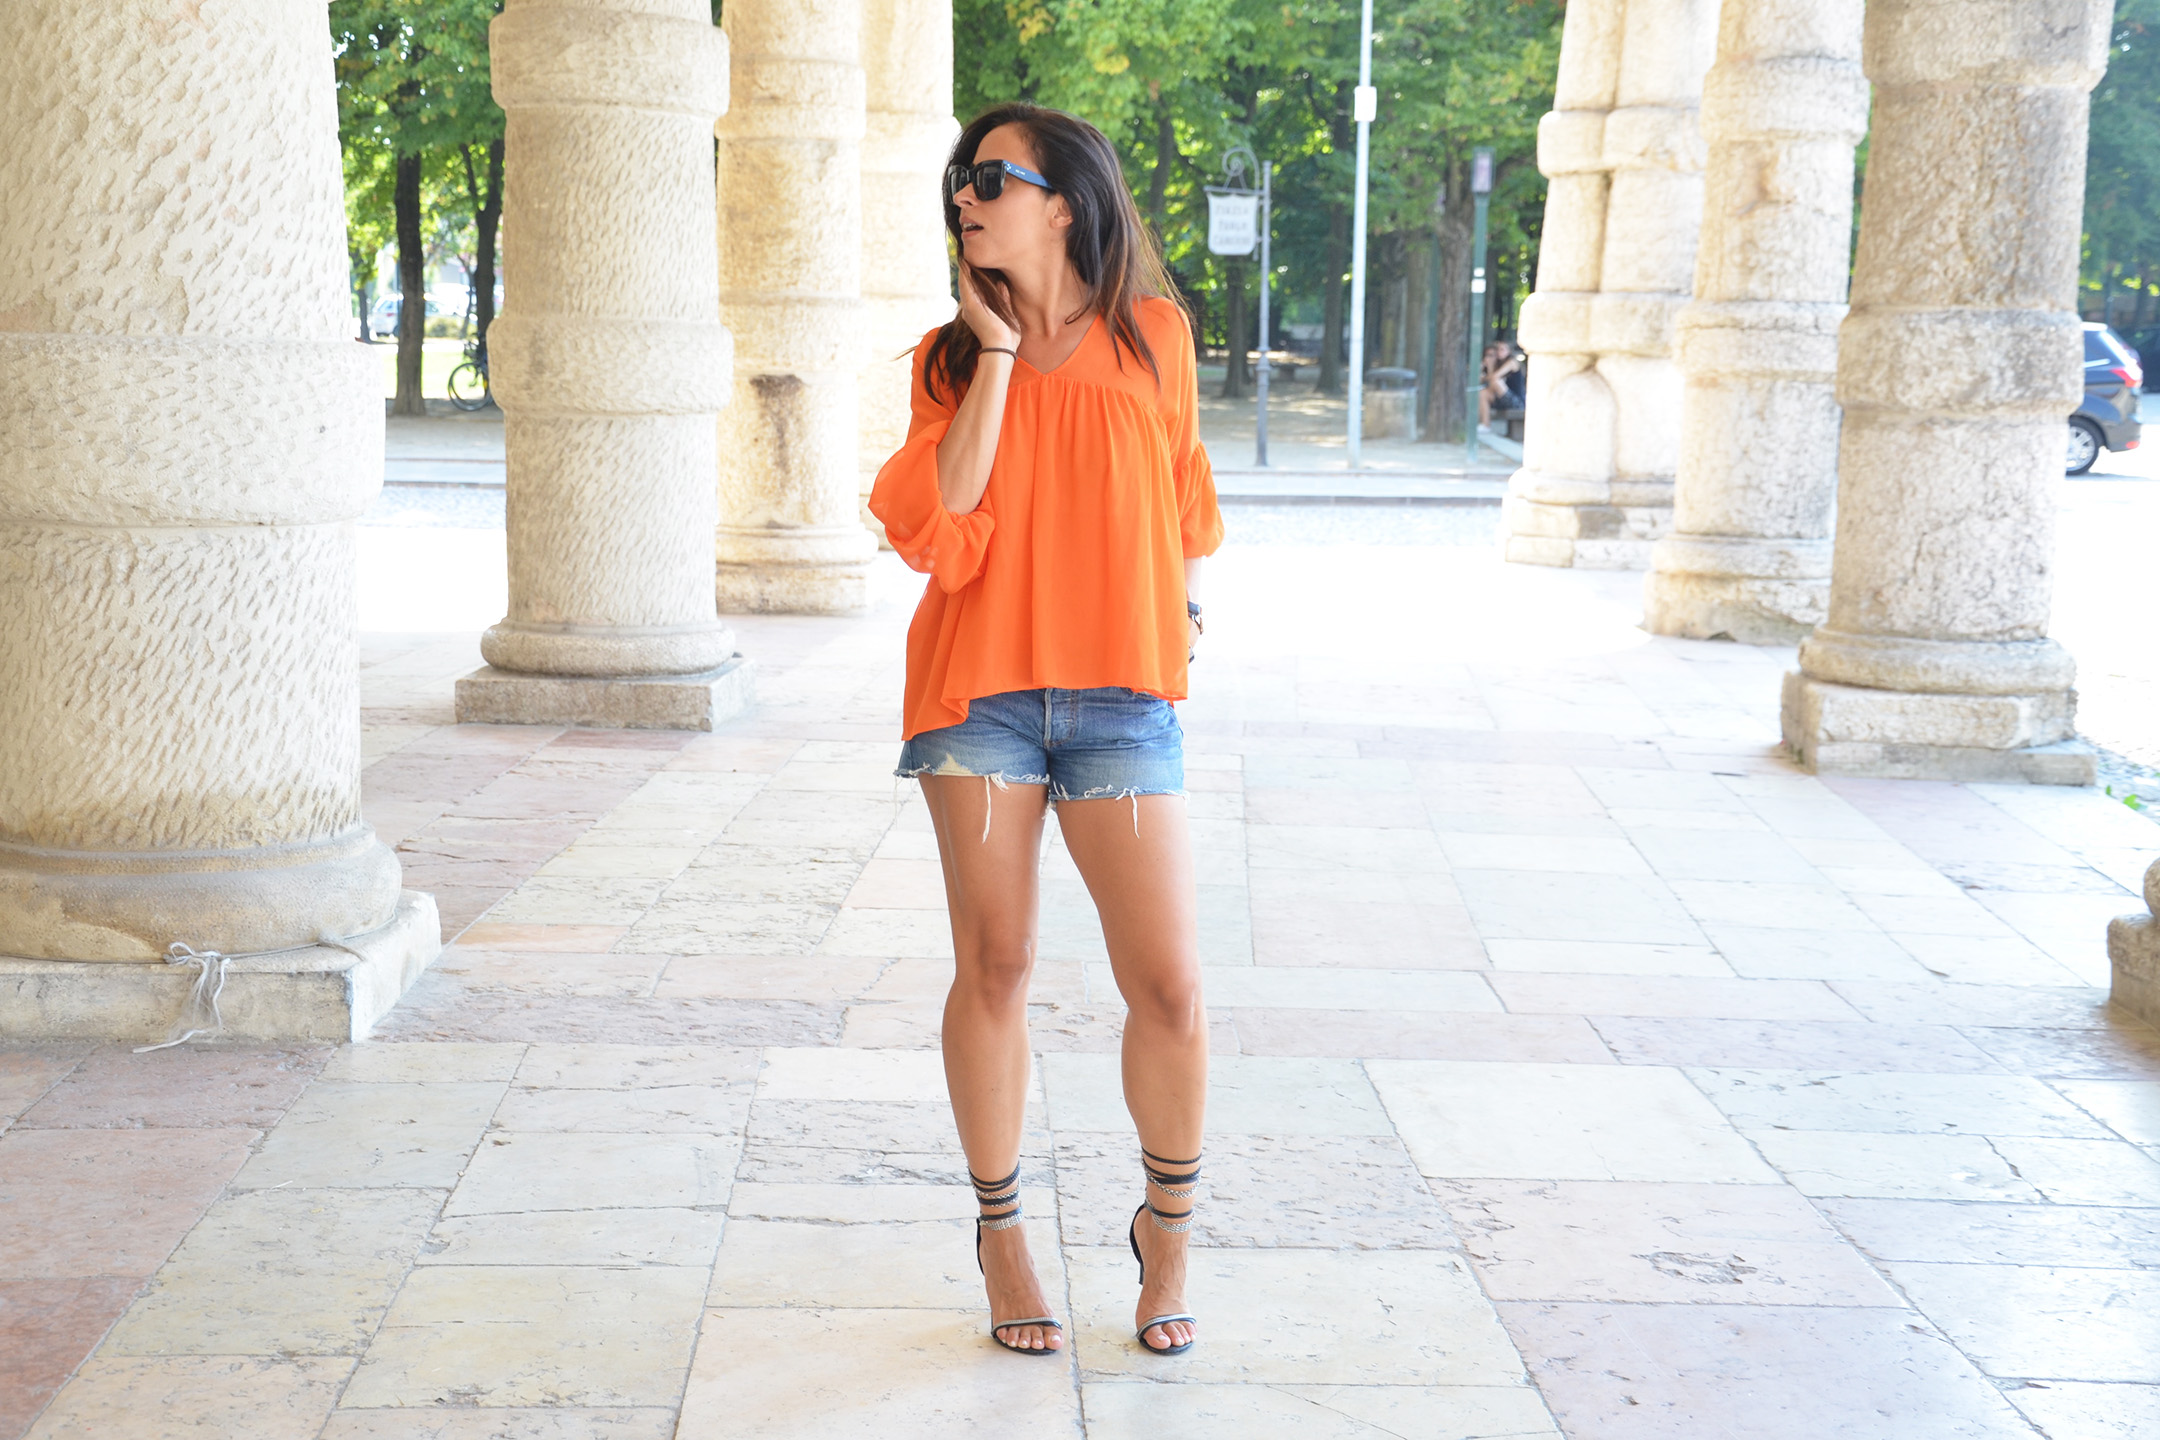 look-alessia-canella-shorts-blusa-arancio-jeans-outfit